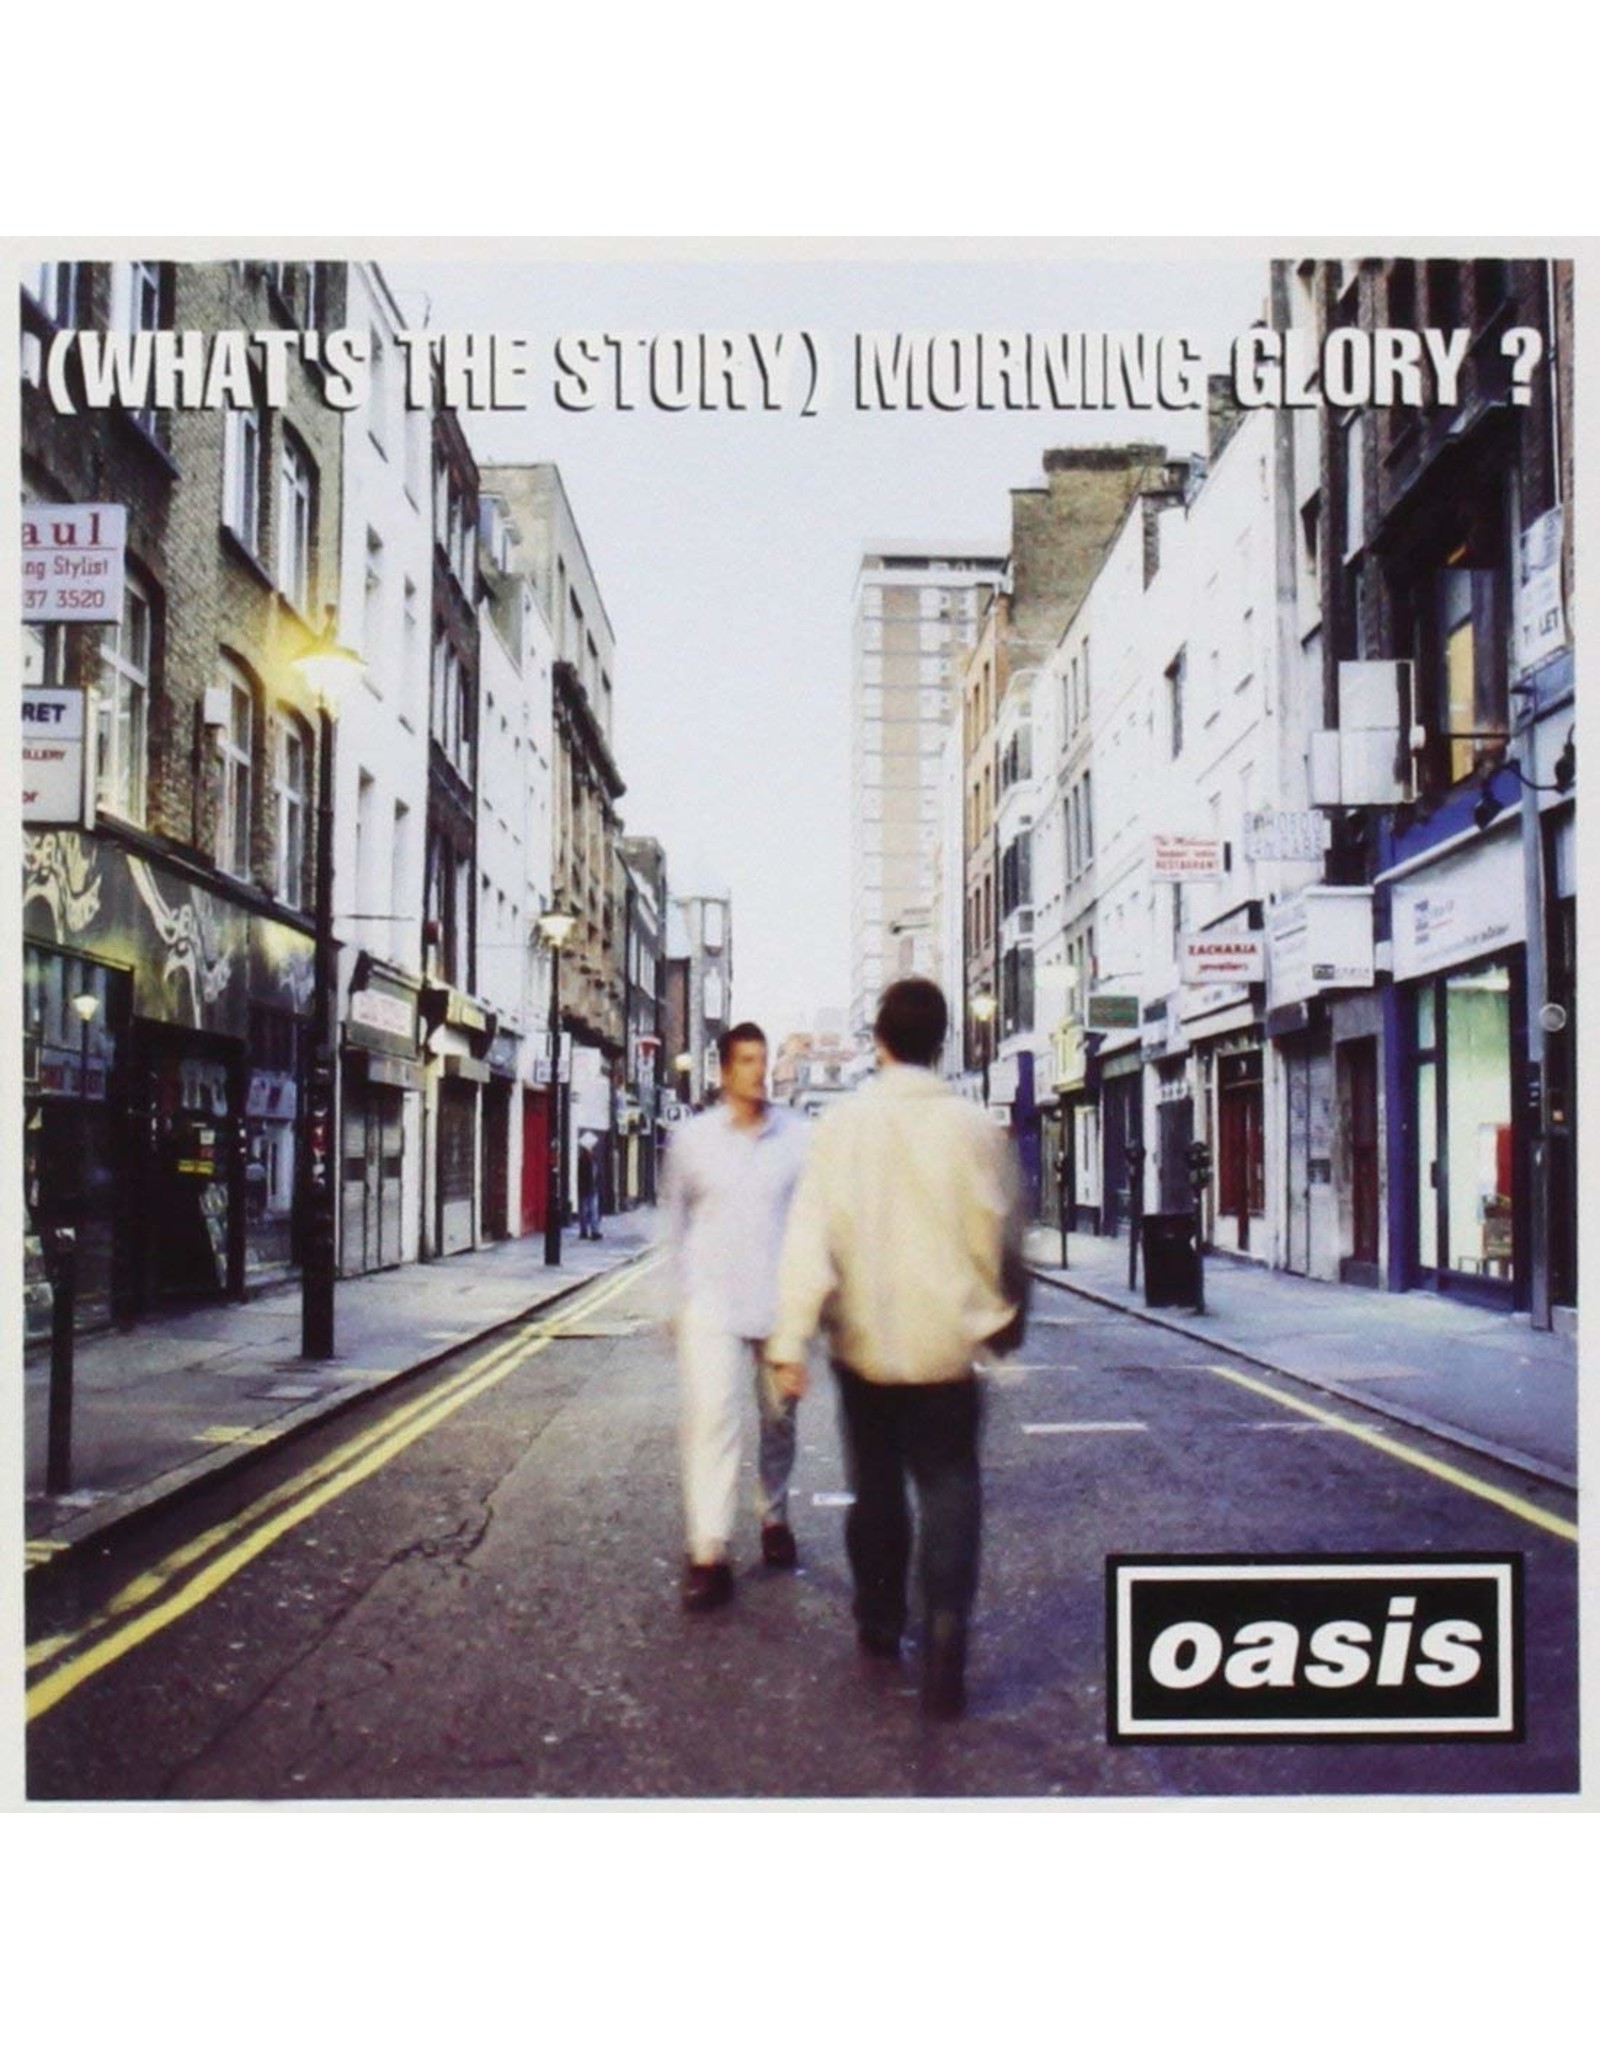 Oasis - (What's the Story) Morning Glory? (20th Anniversary)